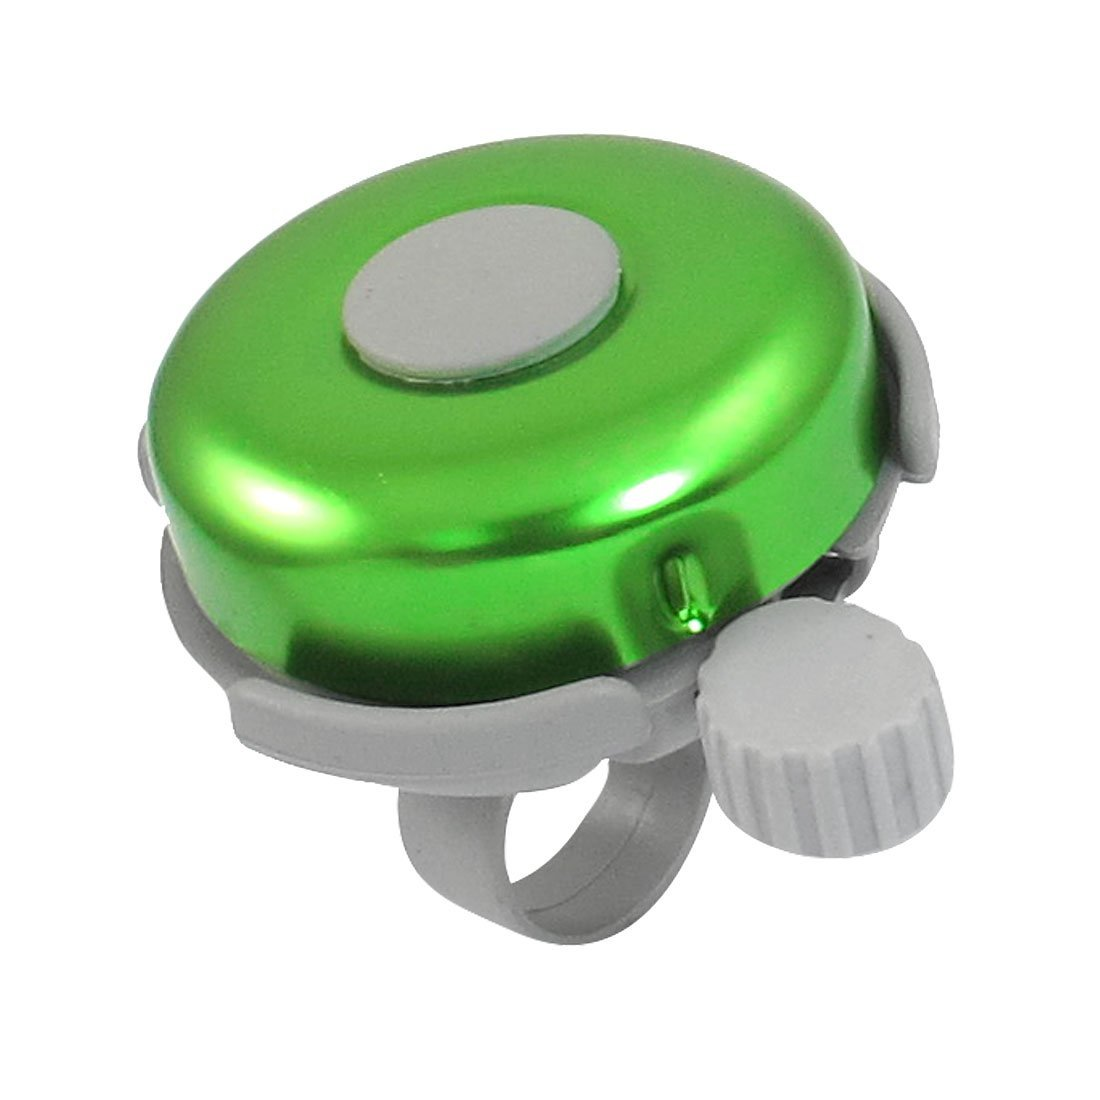 Dimart 22mm Dia. Green Gray Round Shaped Alarm Bike Bicycle Bell